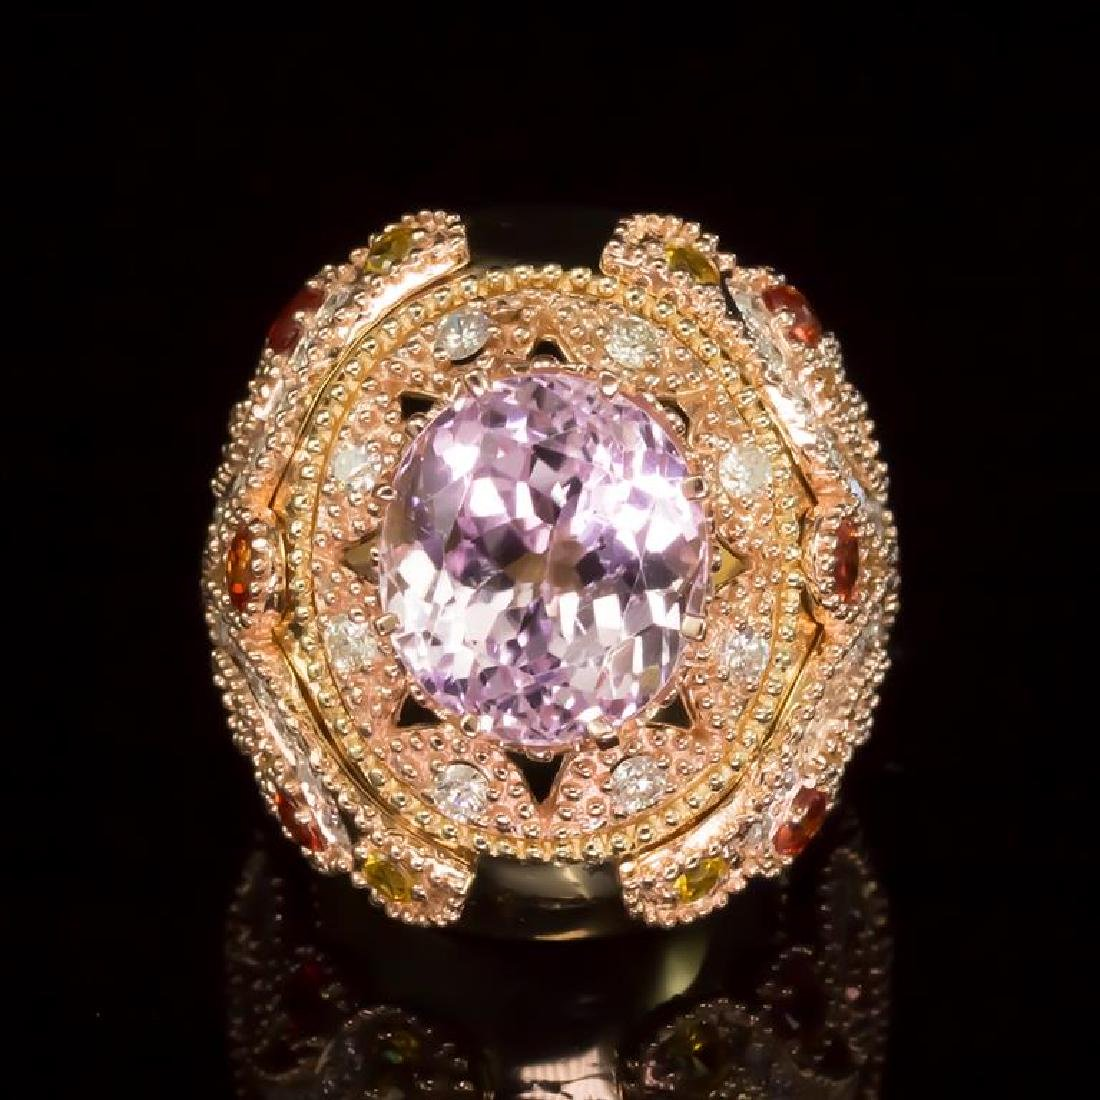 14K Gold 14.78ct Kunzite, 1.40ct Orange Sapphire 1.52ct